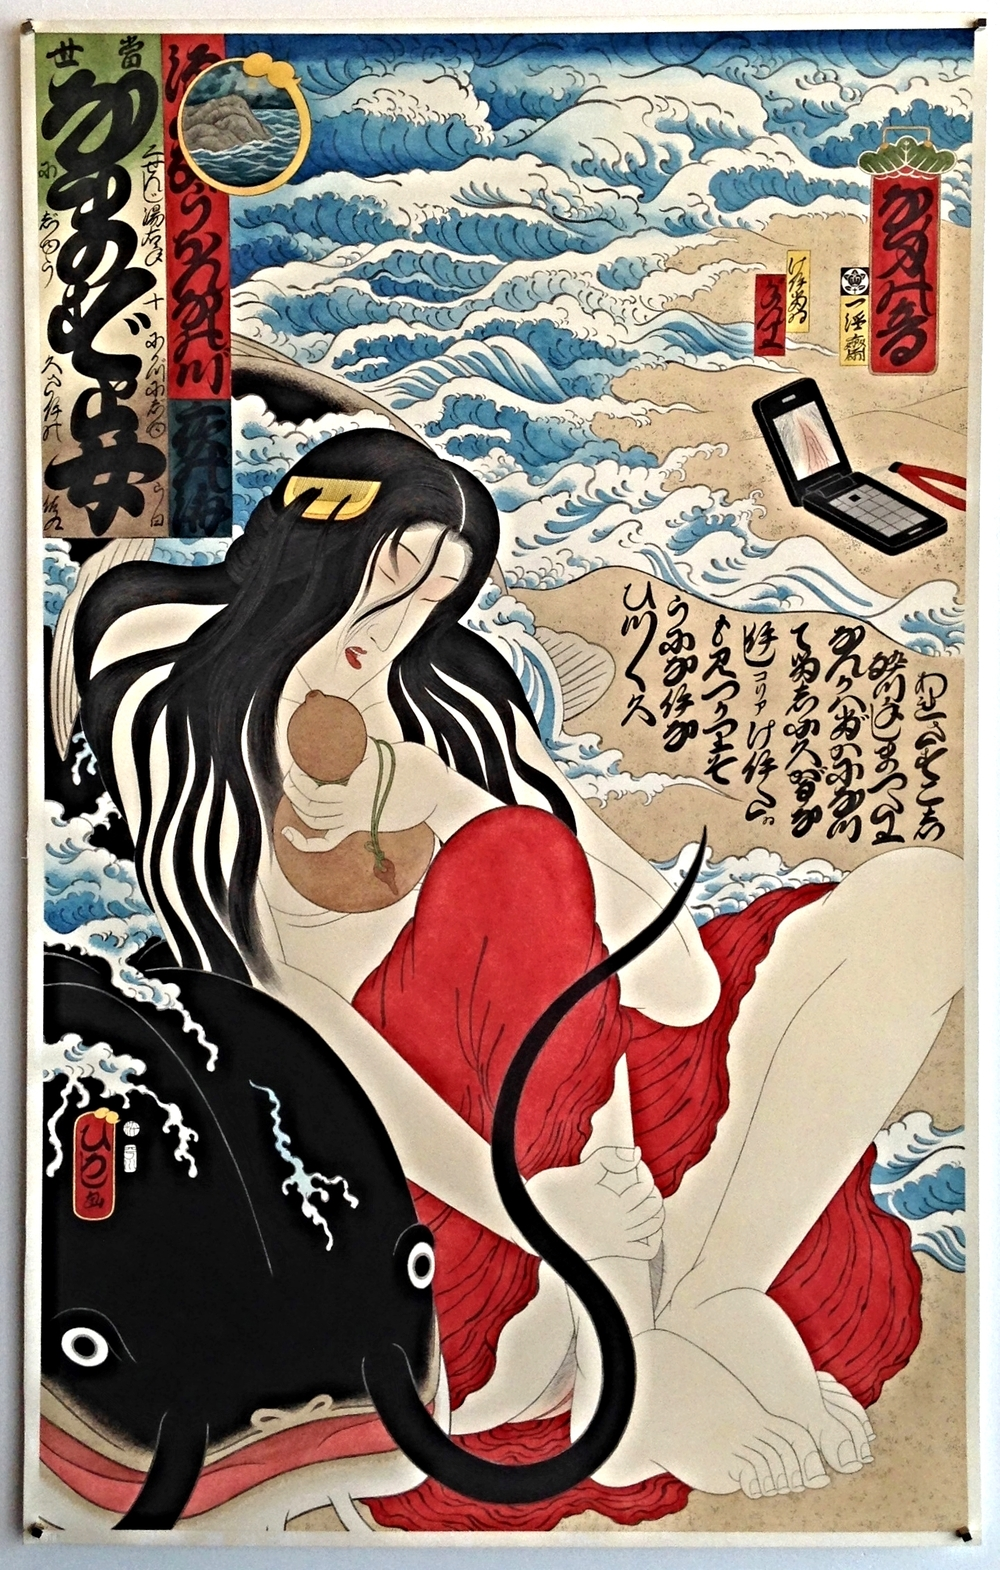 NAMI NO OTO (SURGE OF THE SEA) 24.75 IN. X 39.25 IN.